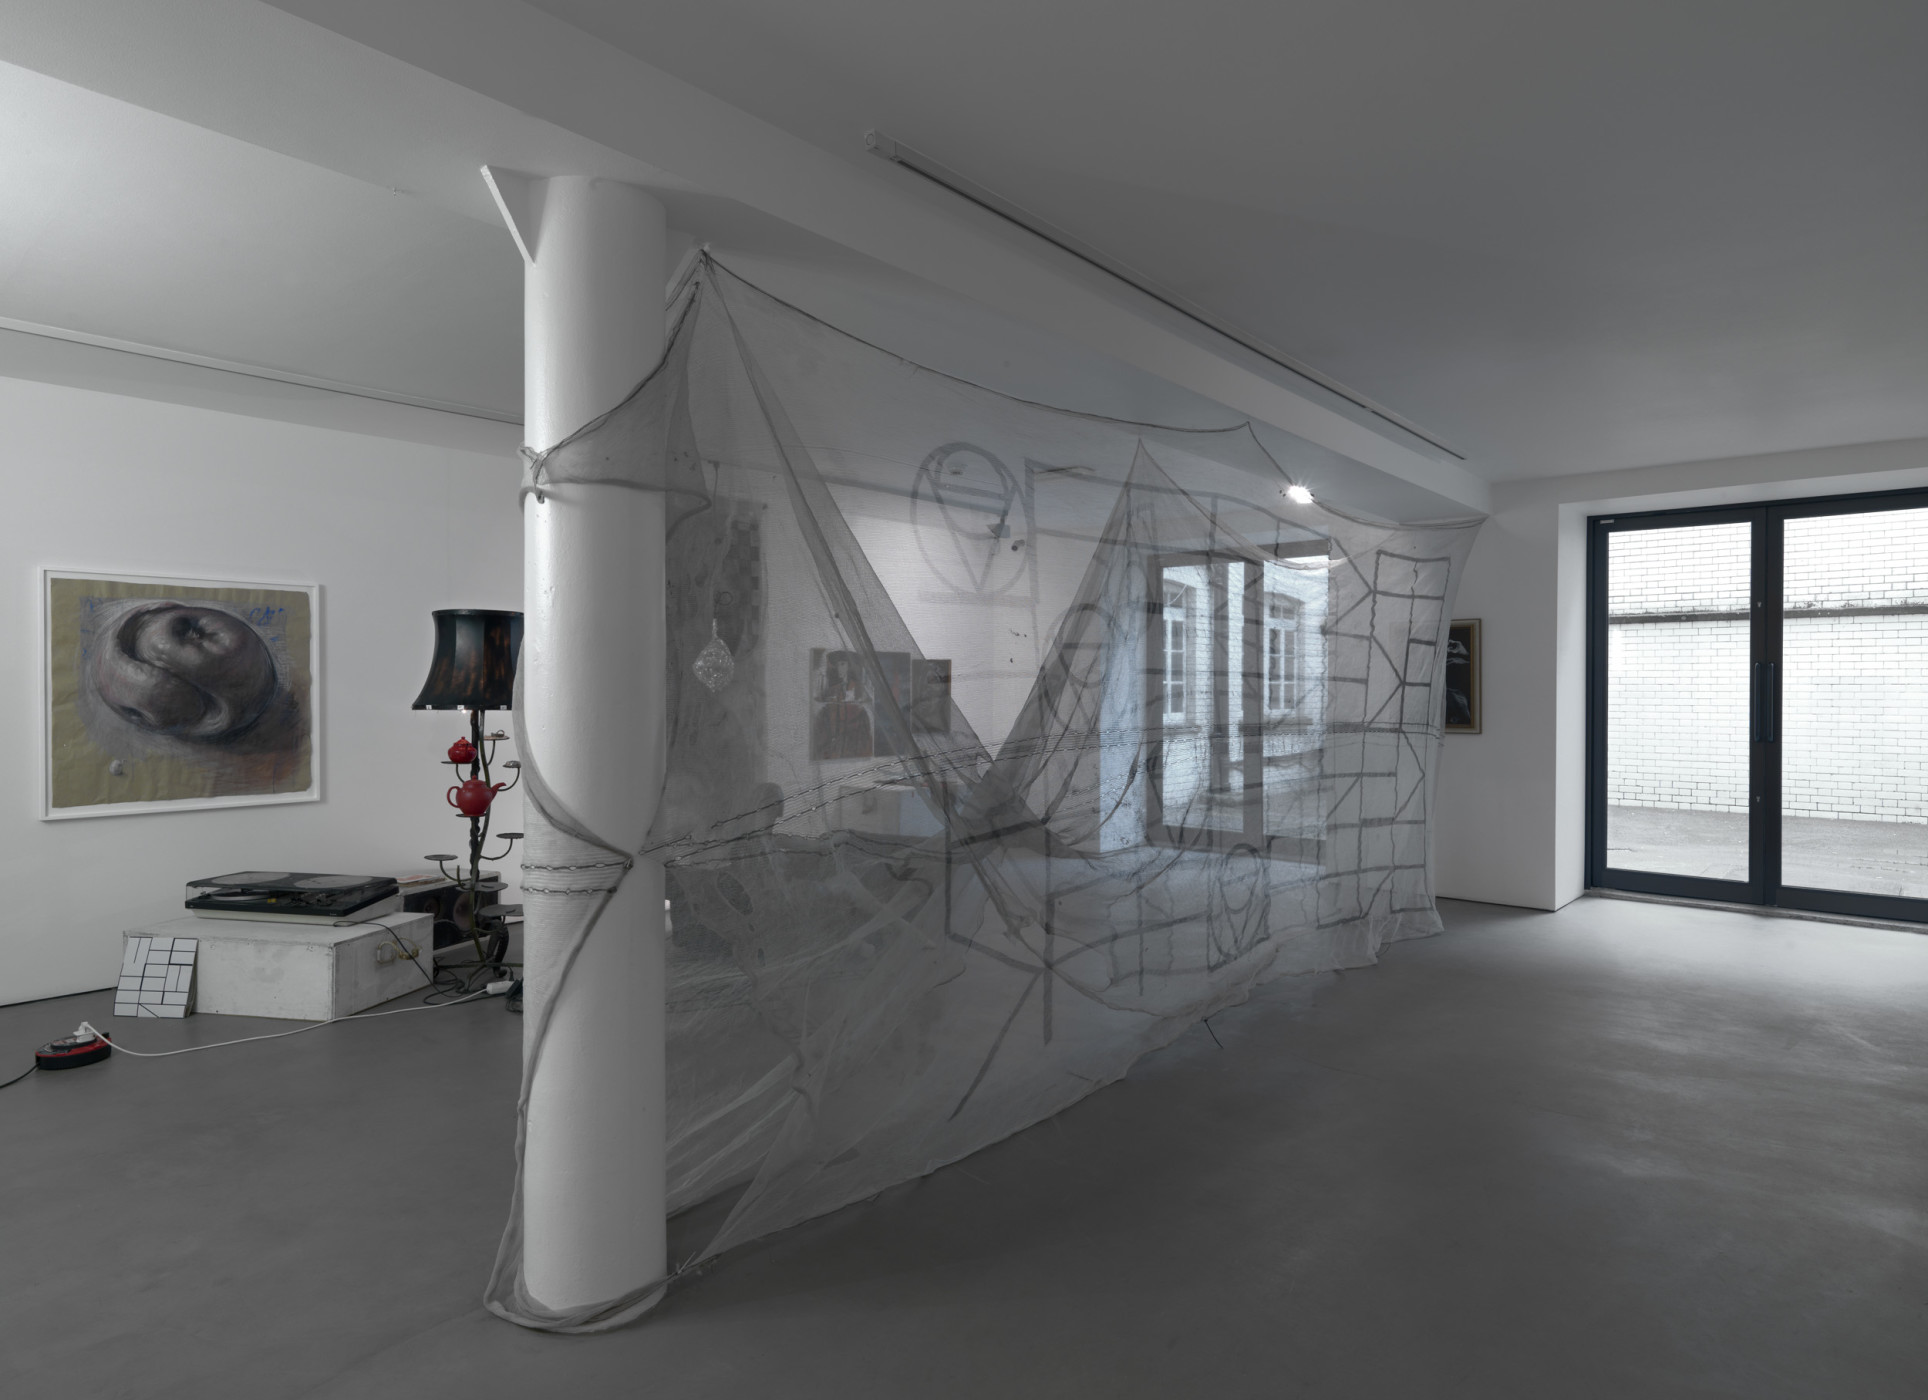 "<div class=""artwork_caption""><p>Installation view, 2012</p></div>"